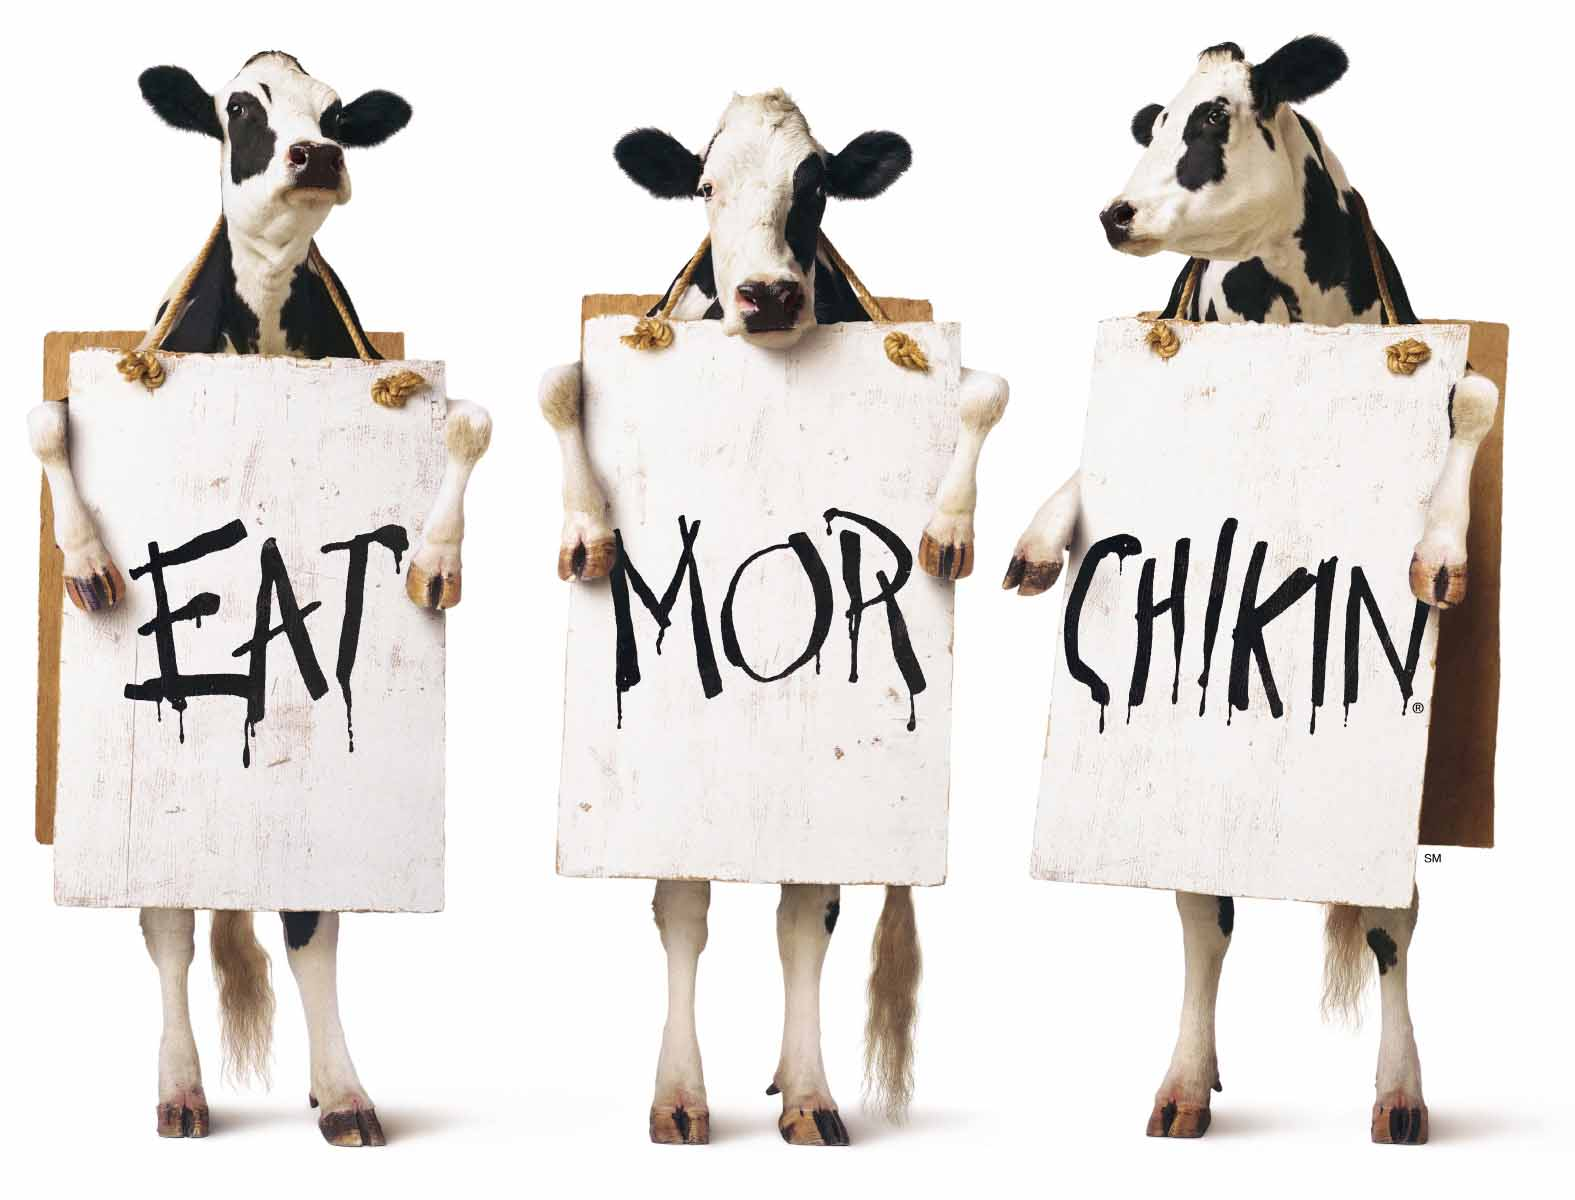 chik fil a Chick-fil-a kickoff game tickets - purchase chick-fil-a kickoff game tickets from primesport, the official ticket exchange, vip hospitality & travel package provider.